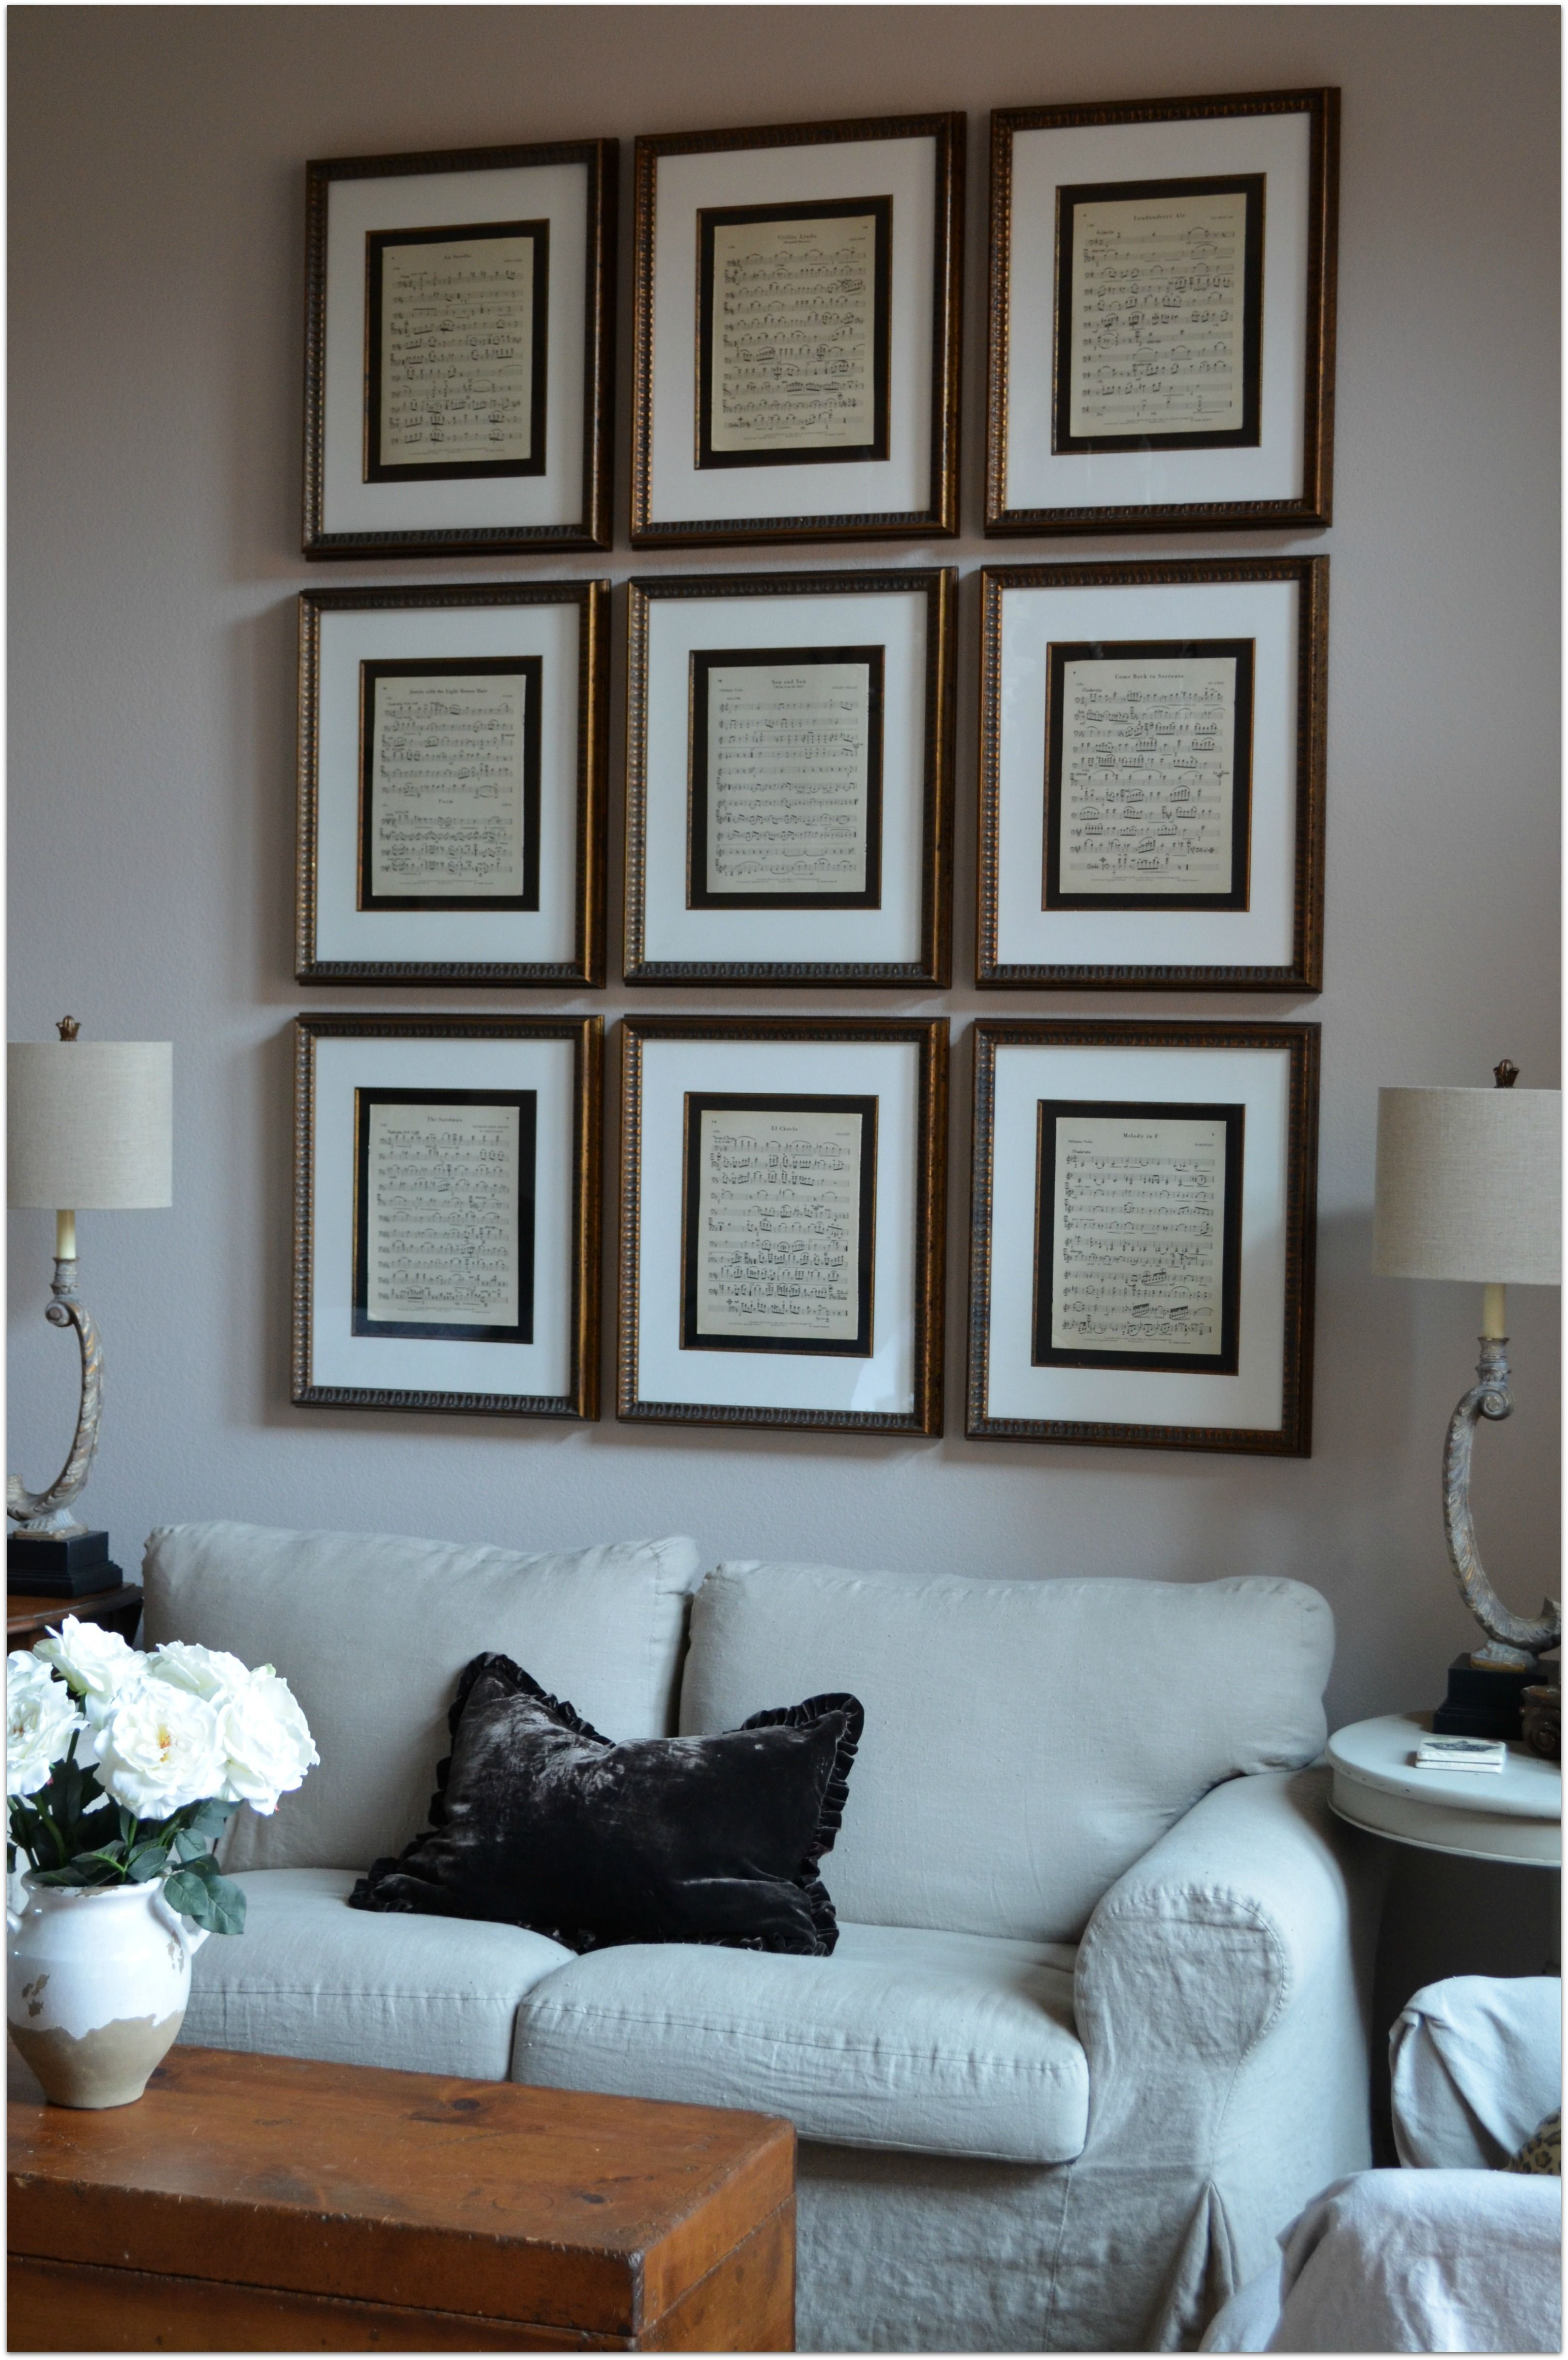 Recycling diy decor projects using reusable stuff you can find at sheet music in 16 x 20 frames for the piano room solutioingenieria Choice Image